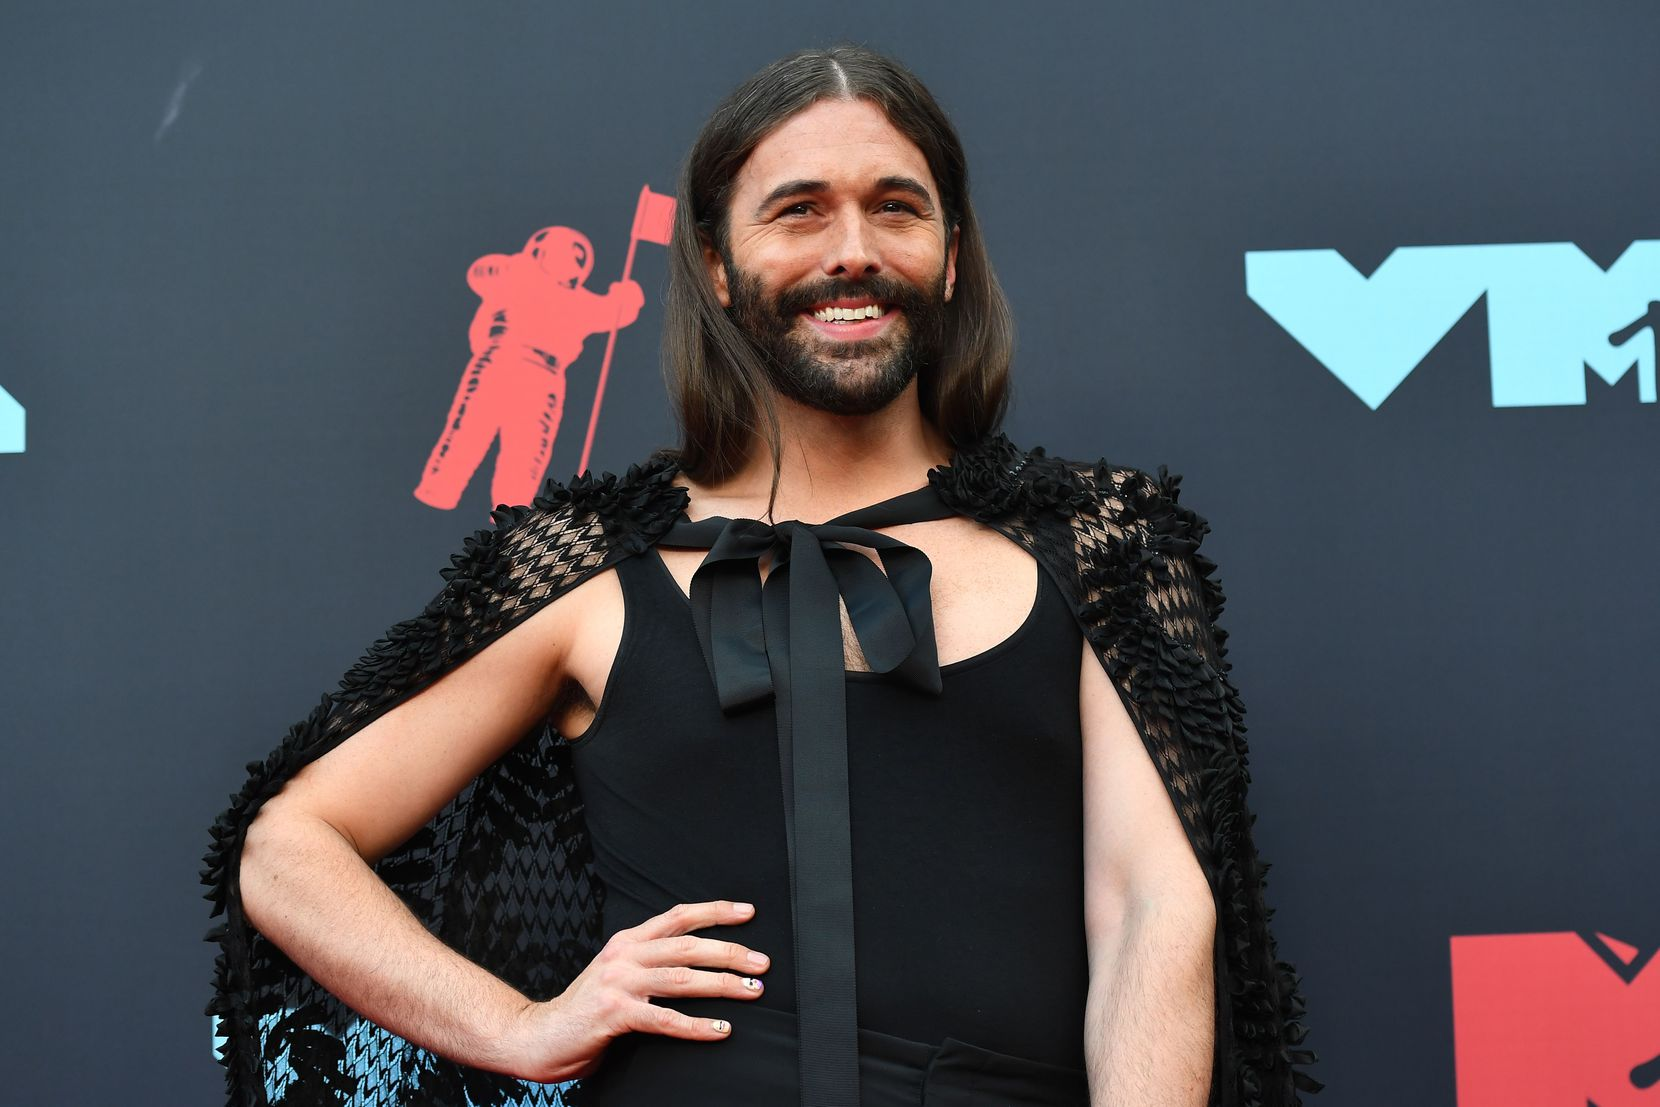 Catch Jonathan Van Ness at Toyota Music Factory when the hairdresser and TV personality's Road to Beijing show stops in North Texas on Dec. 6.